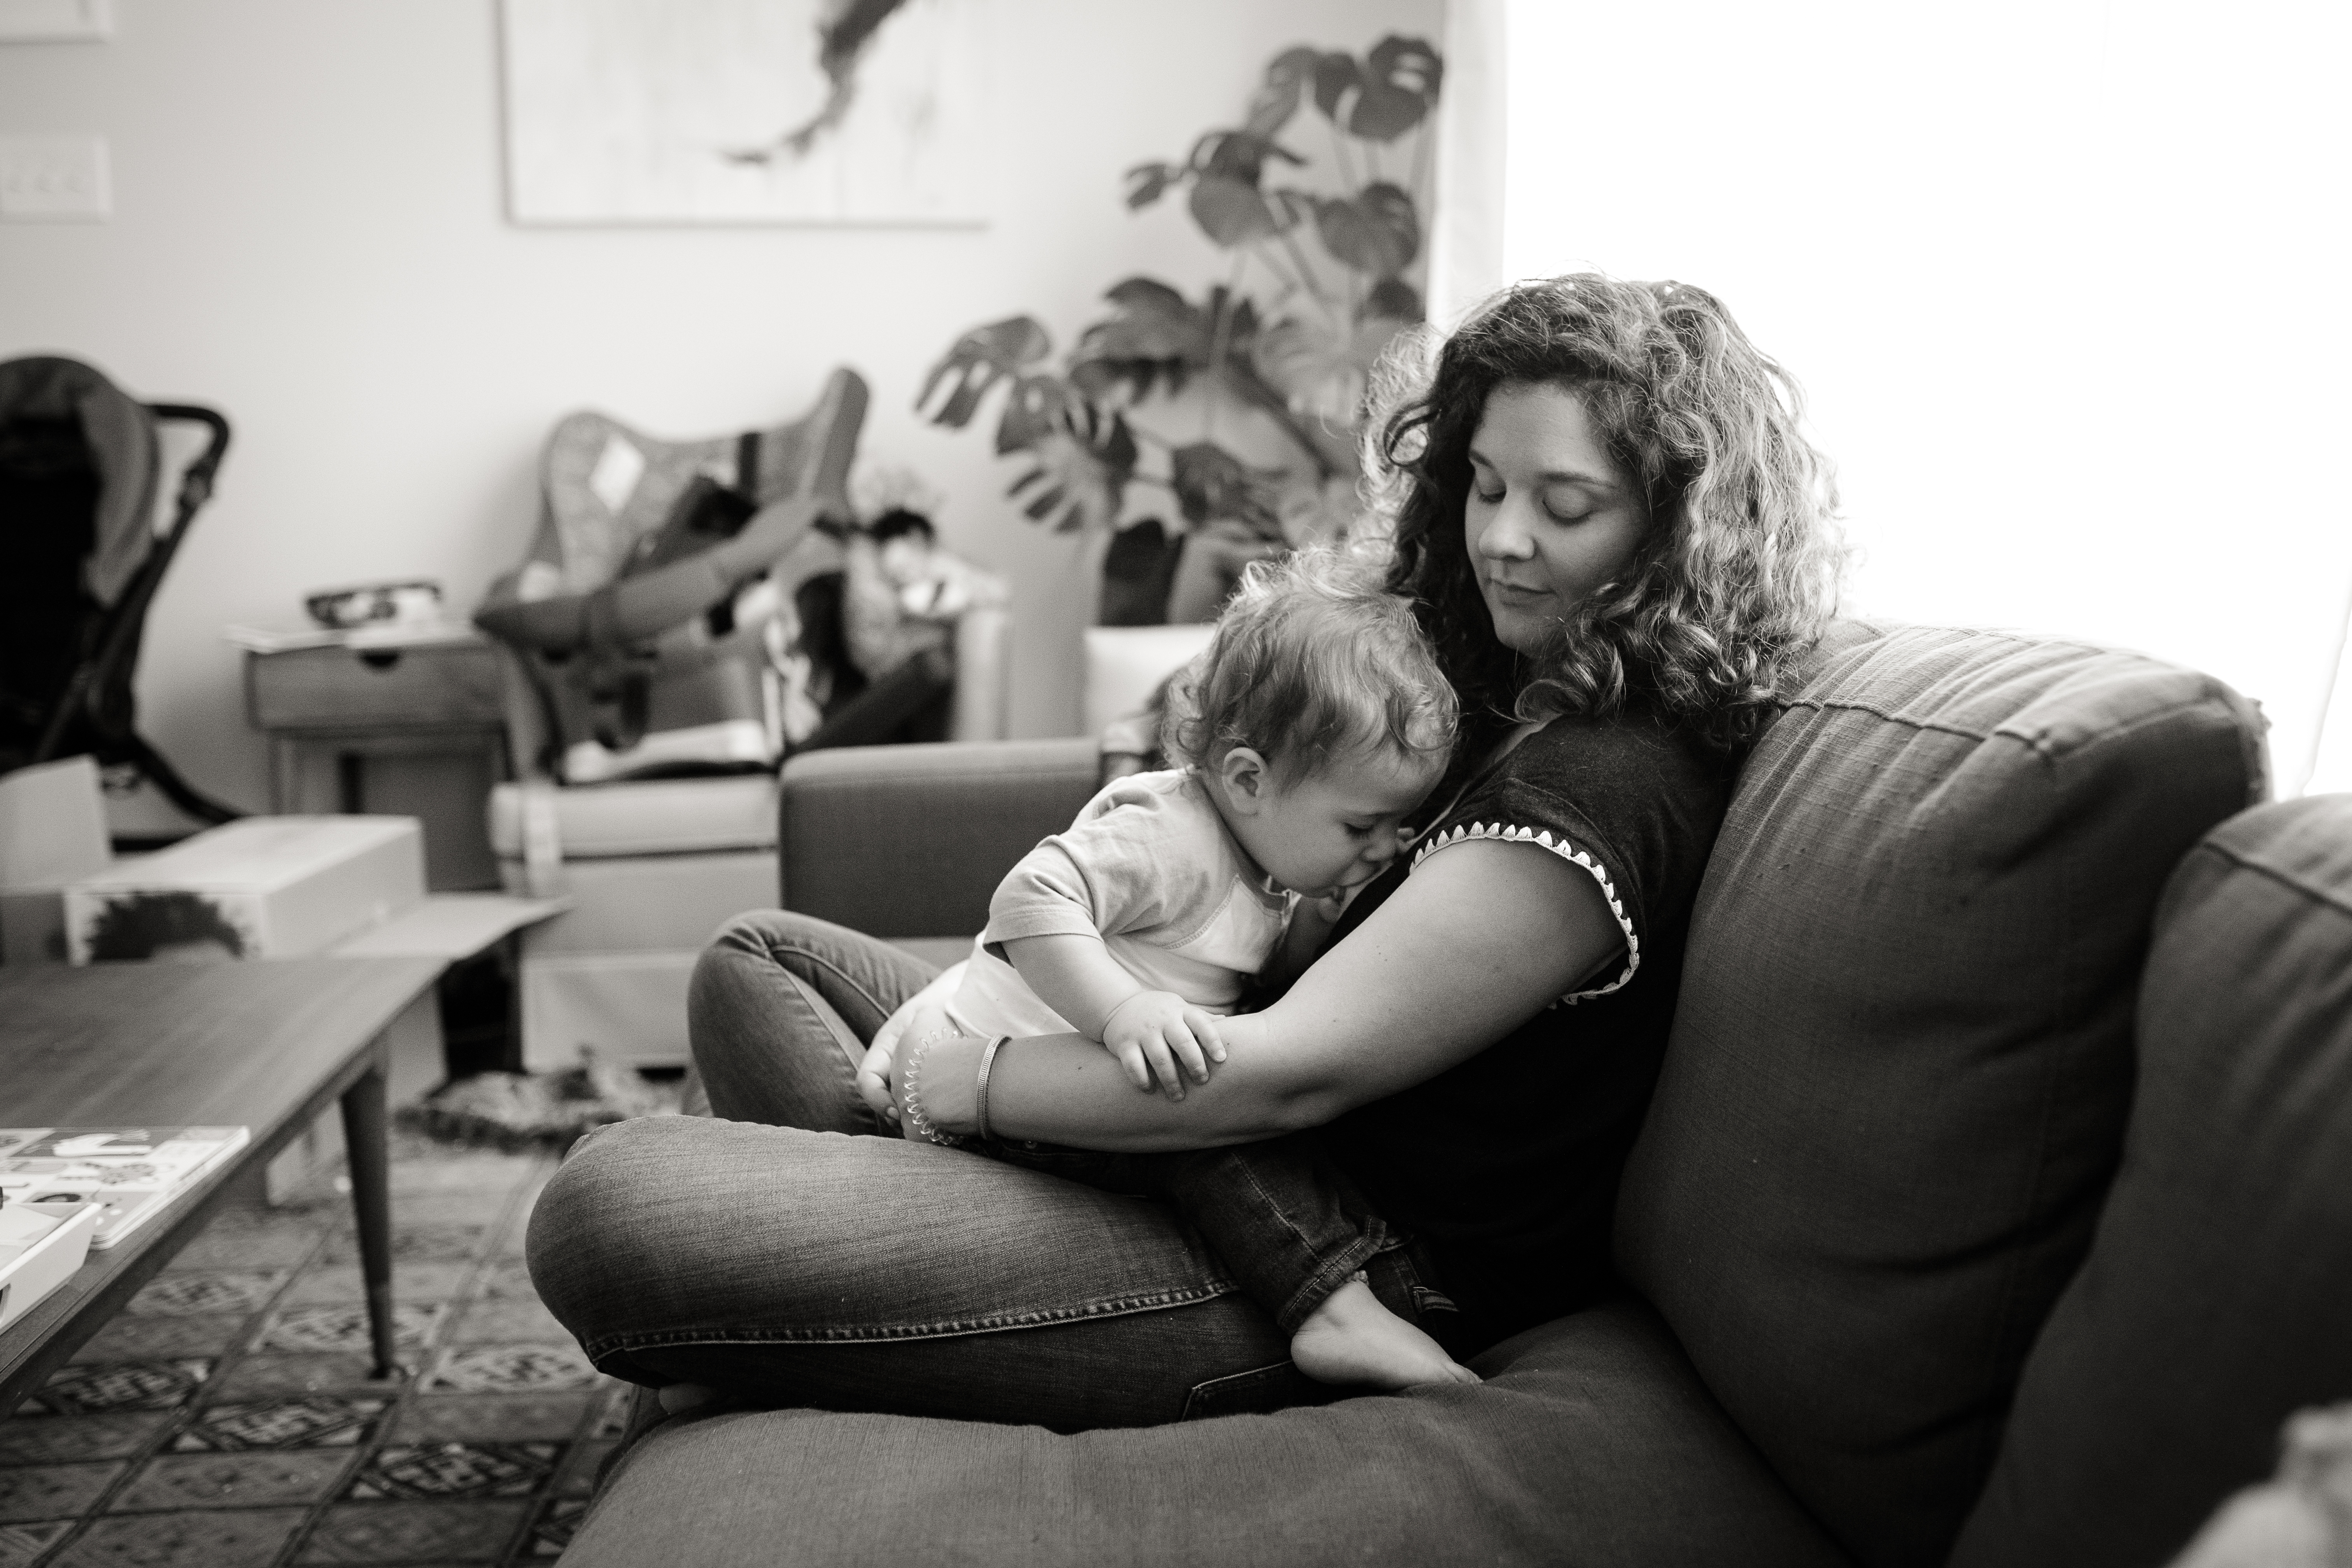 #2 : A Very Positive Postpartum Story with Carrie Murphy, Birth Doula, Writer and Mother